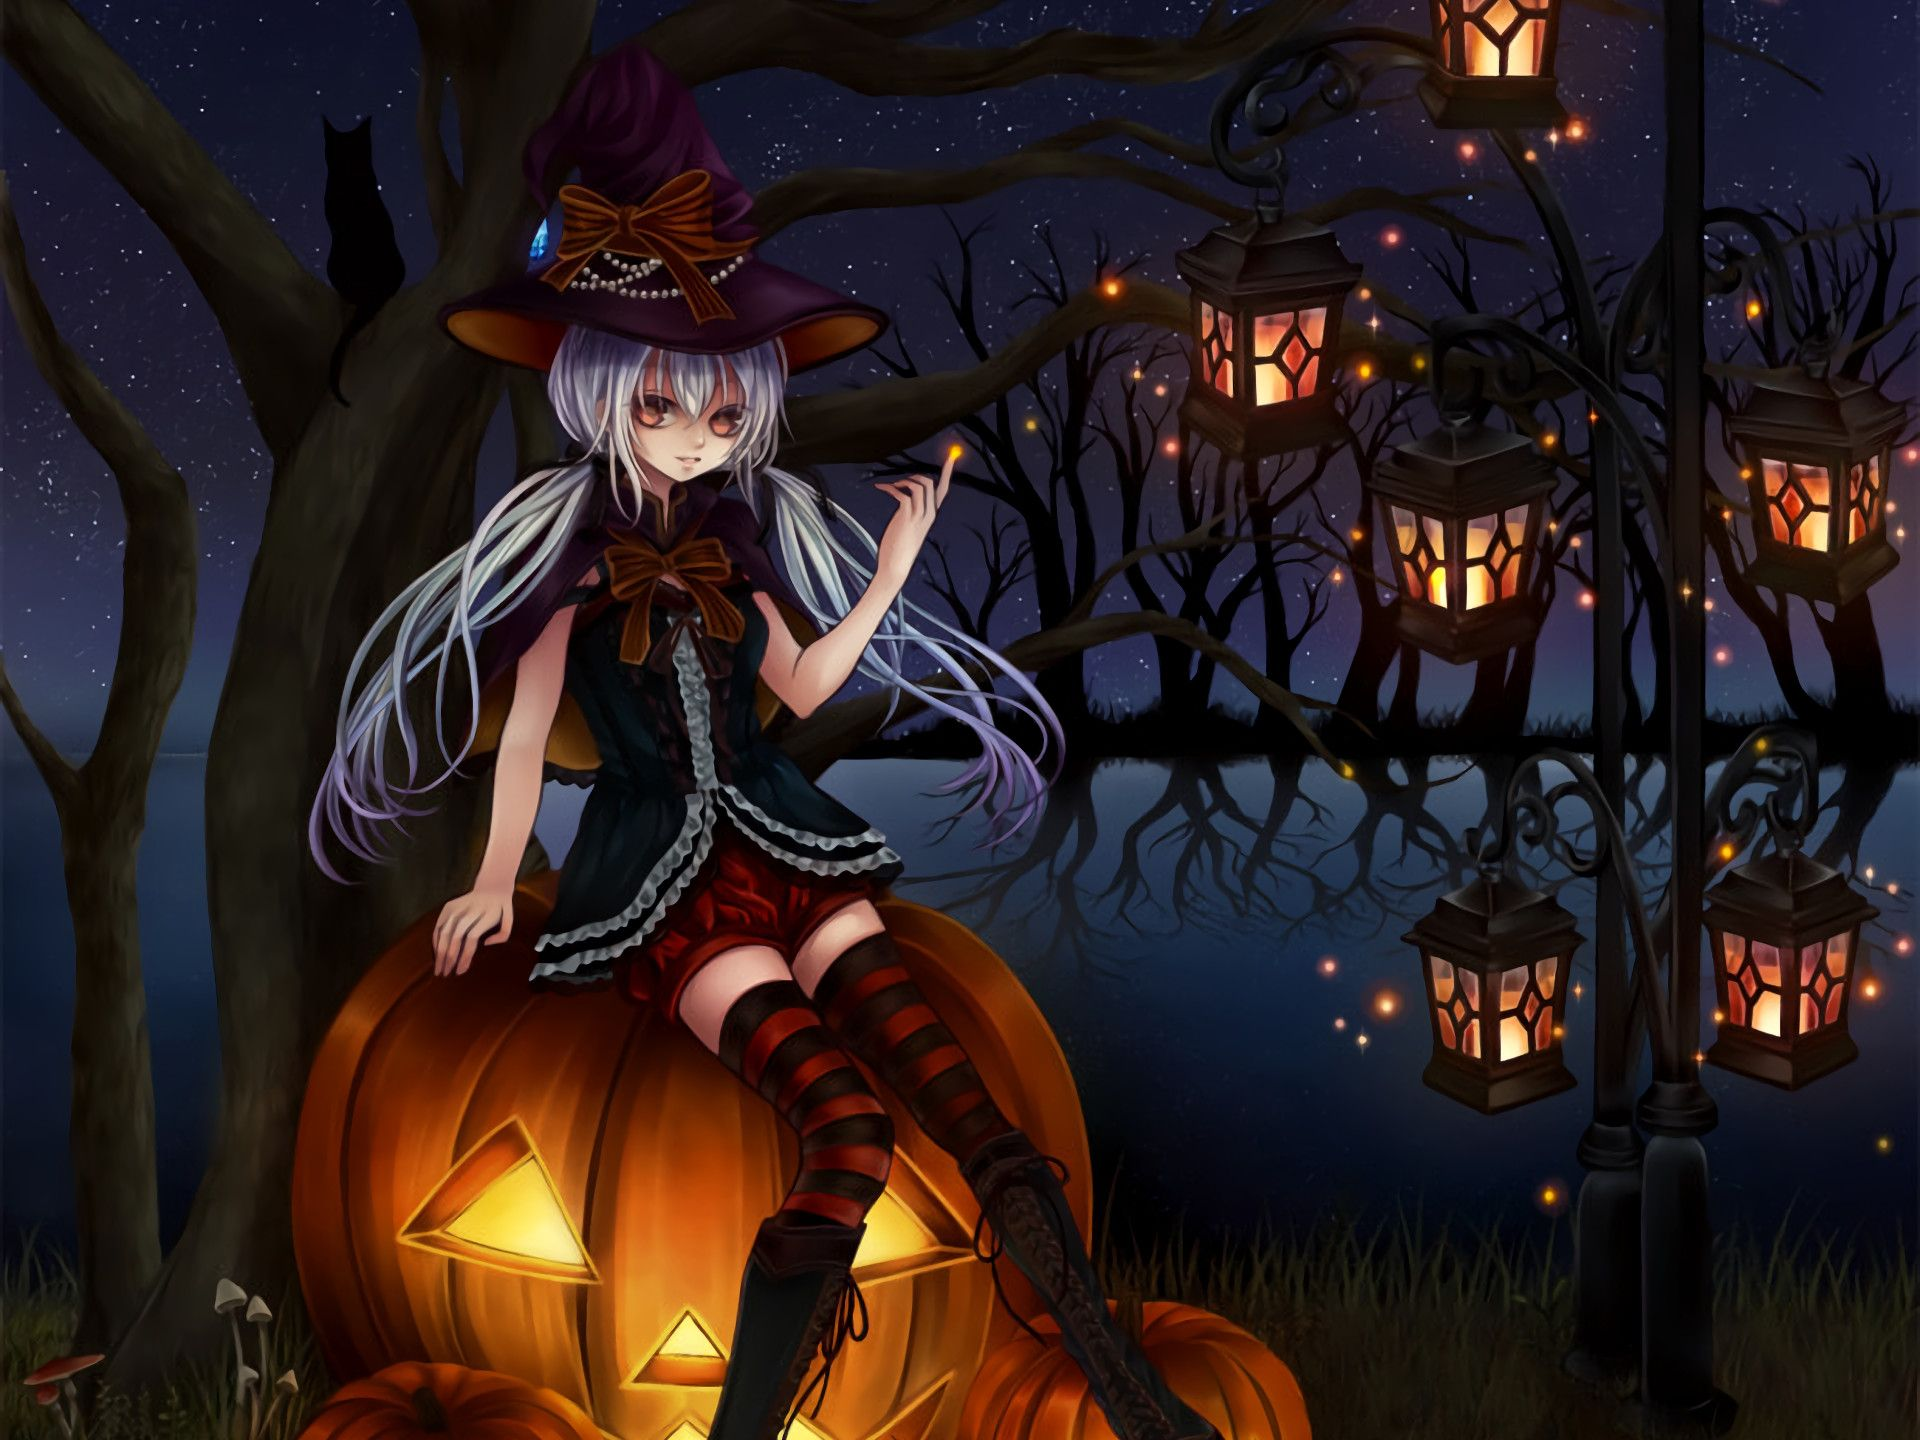 Anime Witch Wallpapers - Top Free Anime Witch Backgrounds ...